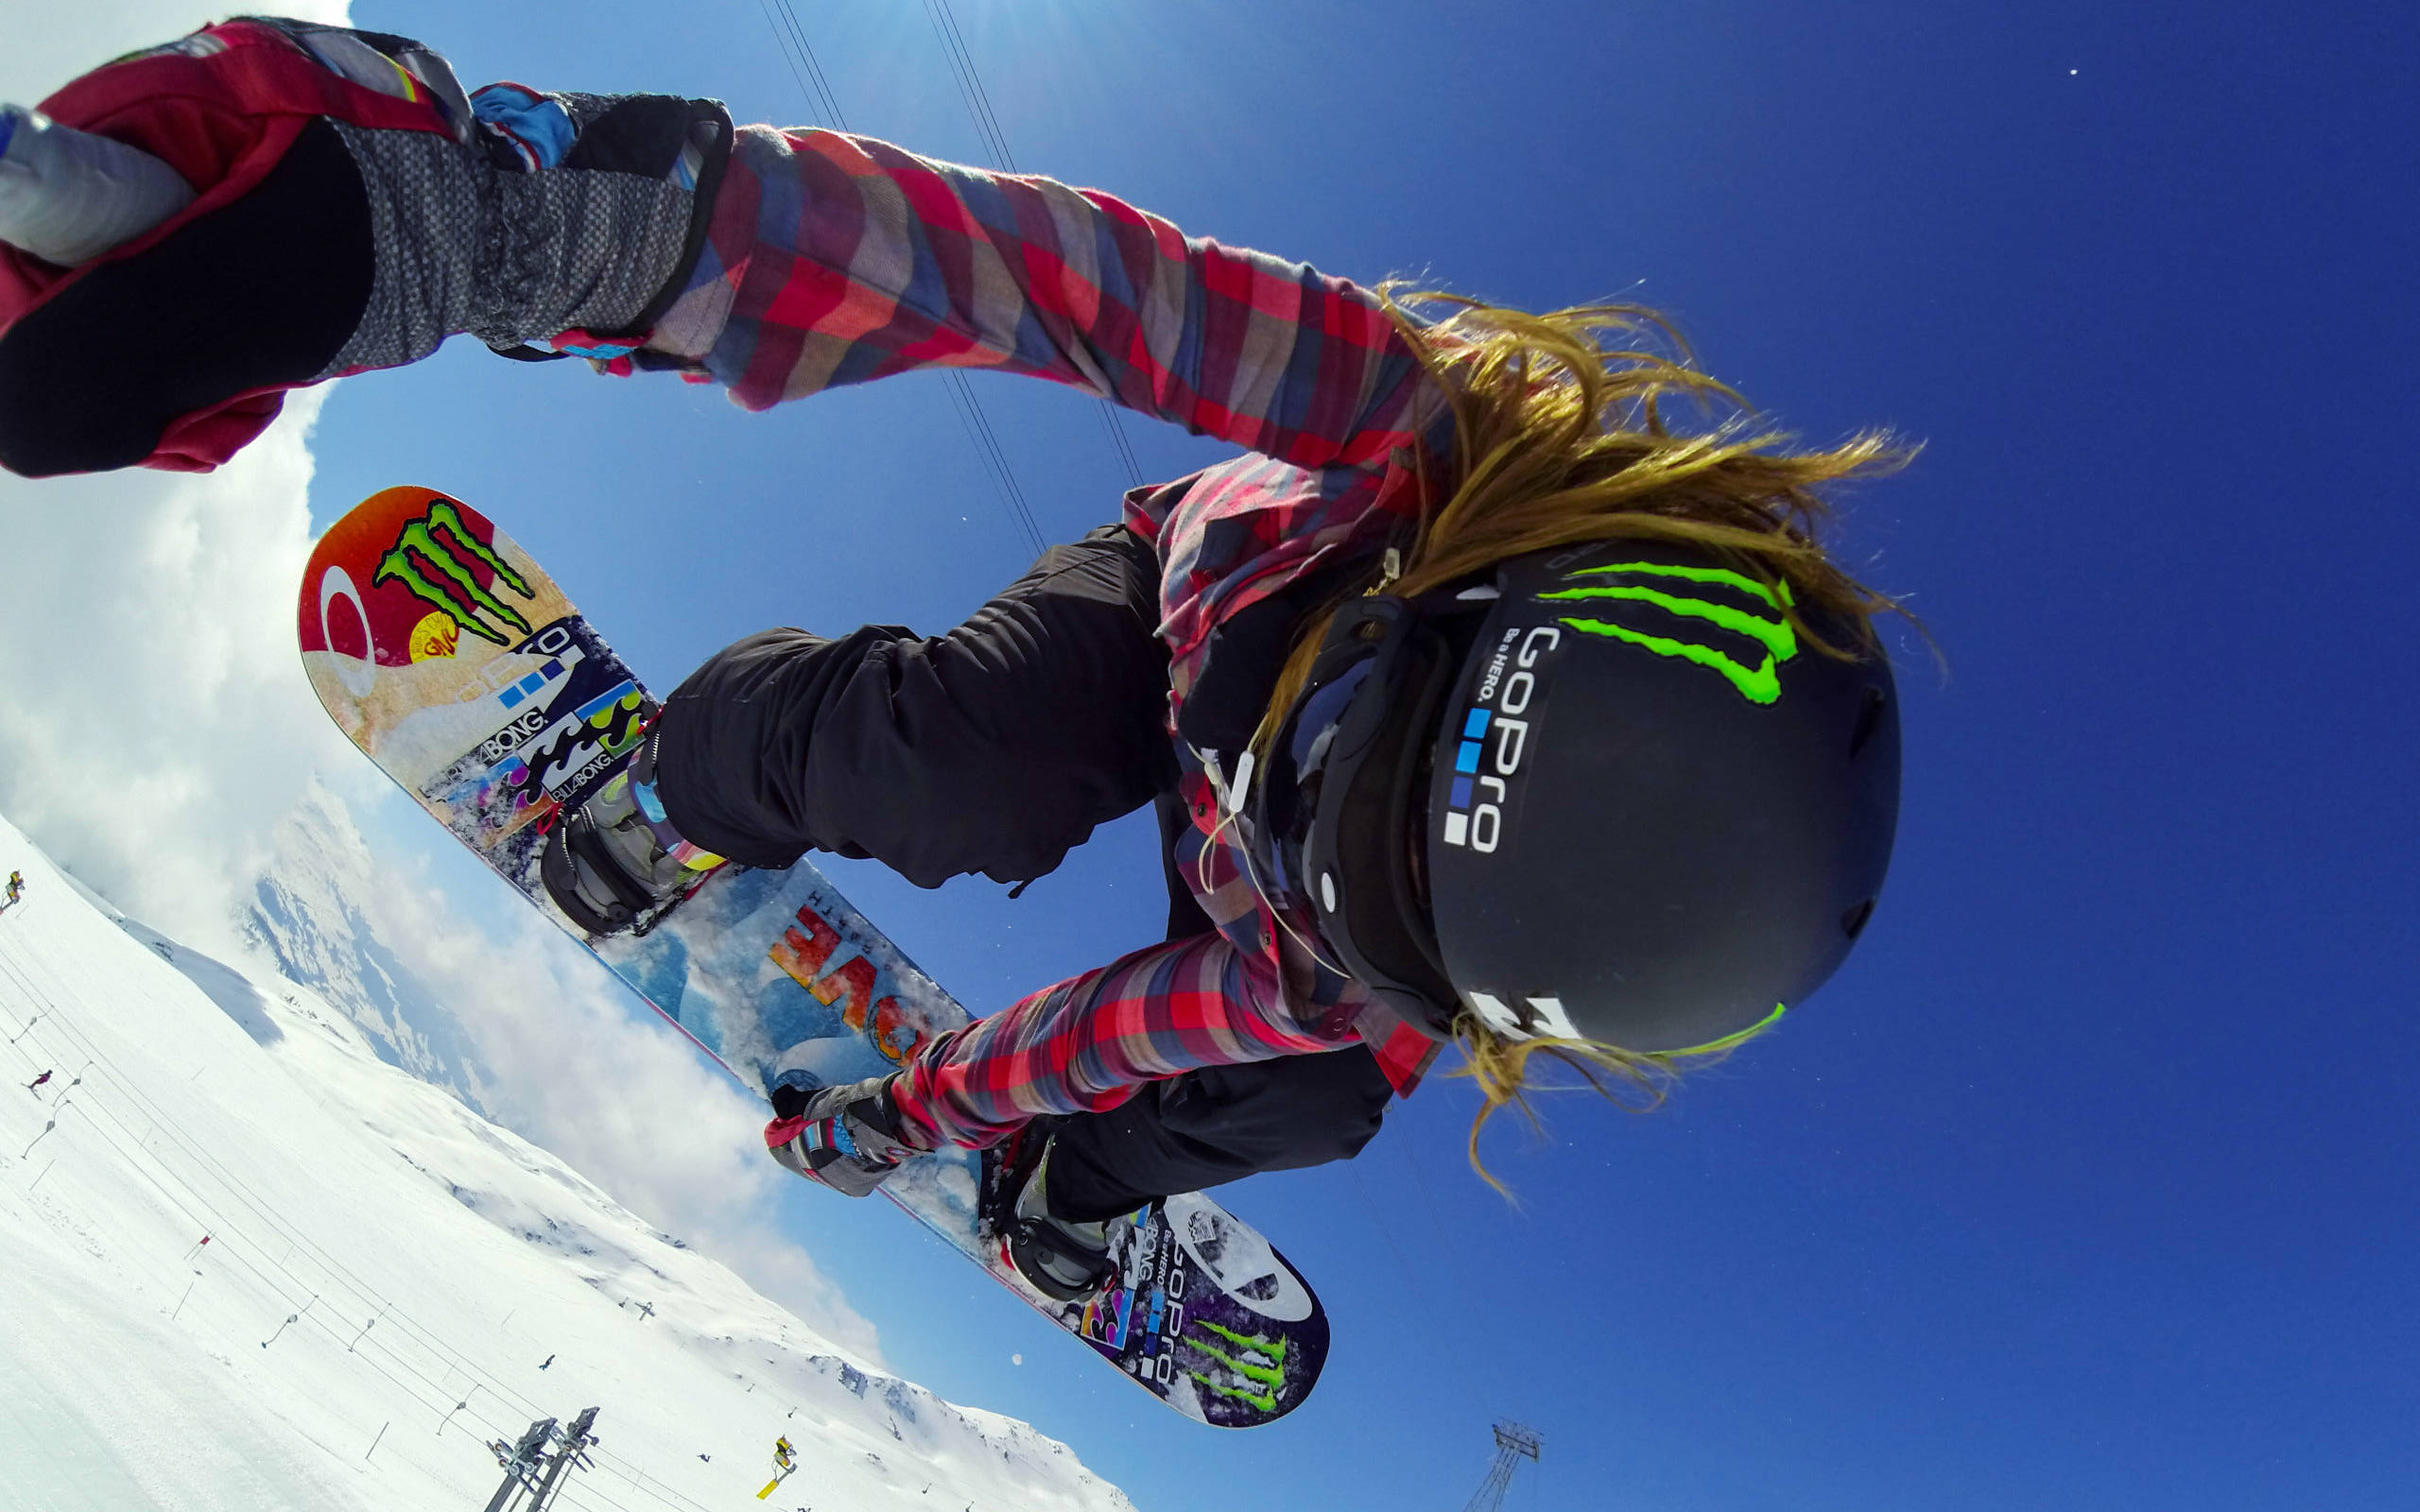 Gopro wallpaper 69 images 2560x1600 jamie anderson snowboarding gopro widescreen and full hd wallpapers voltagebd Image collections